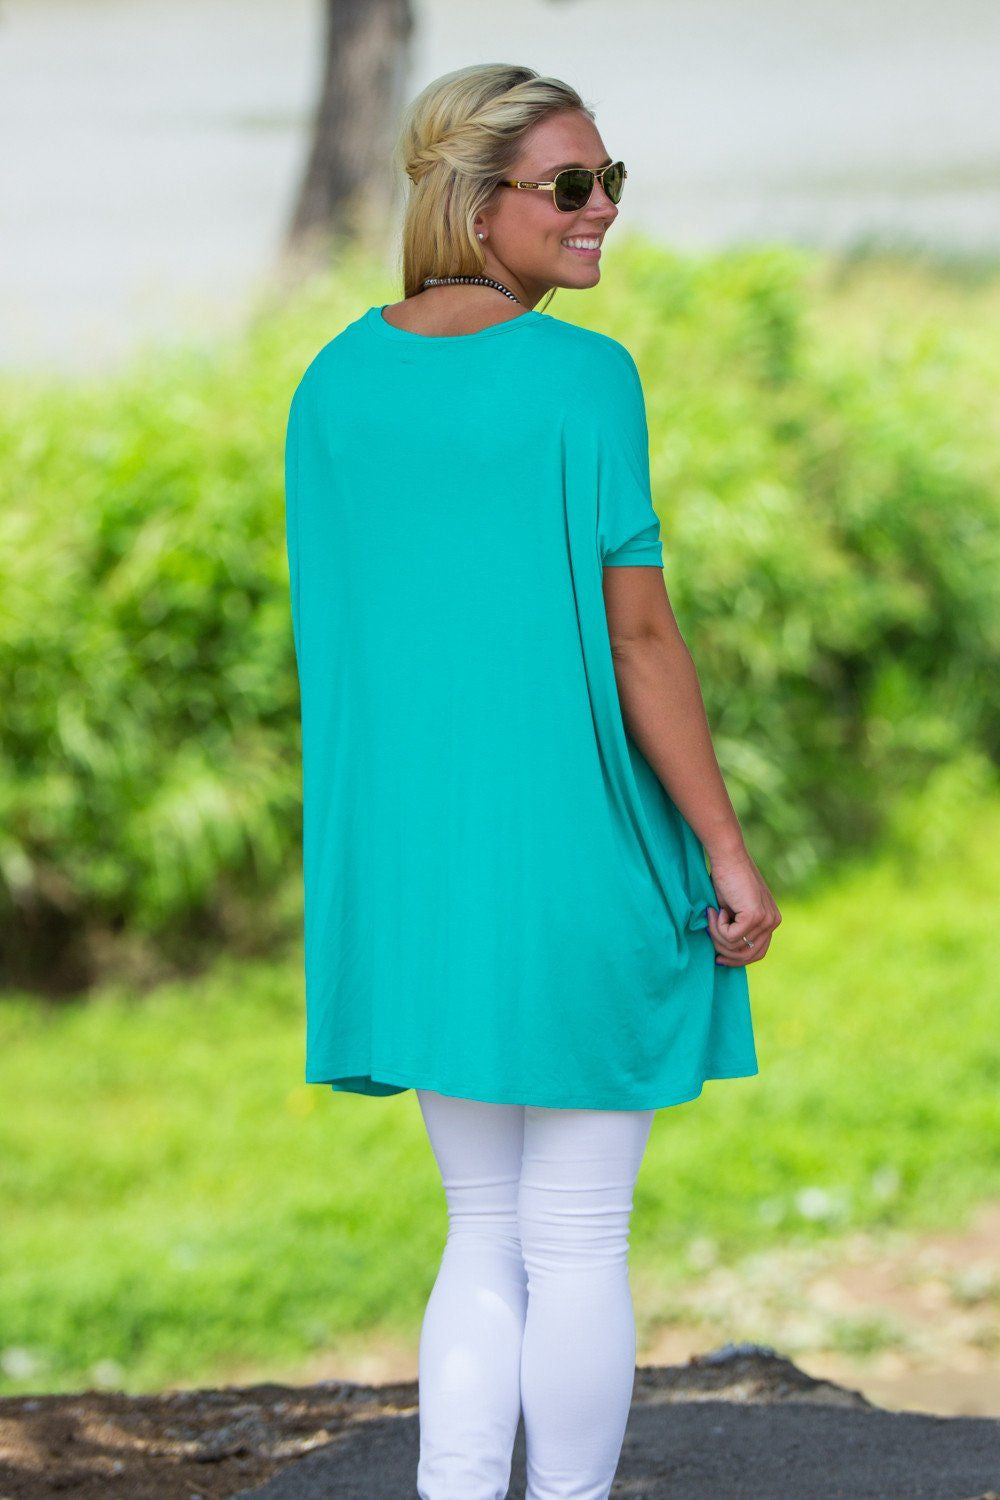 Short Sleeve V-Neck Piko Tunic - Light Green - Piko Clothing - 2